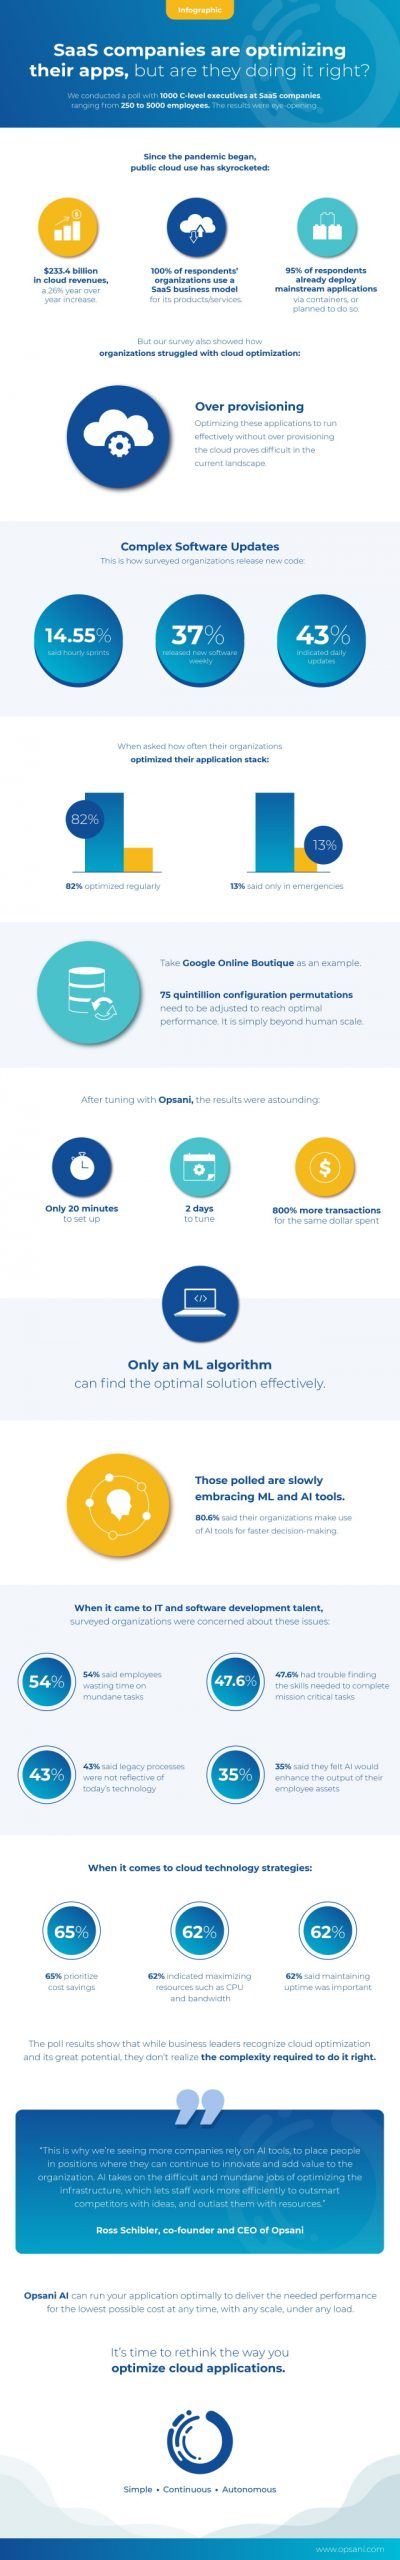 Opsani cloud infographic